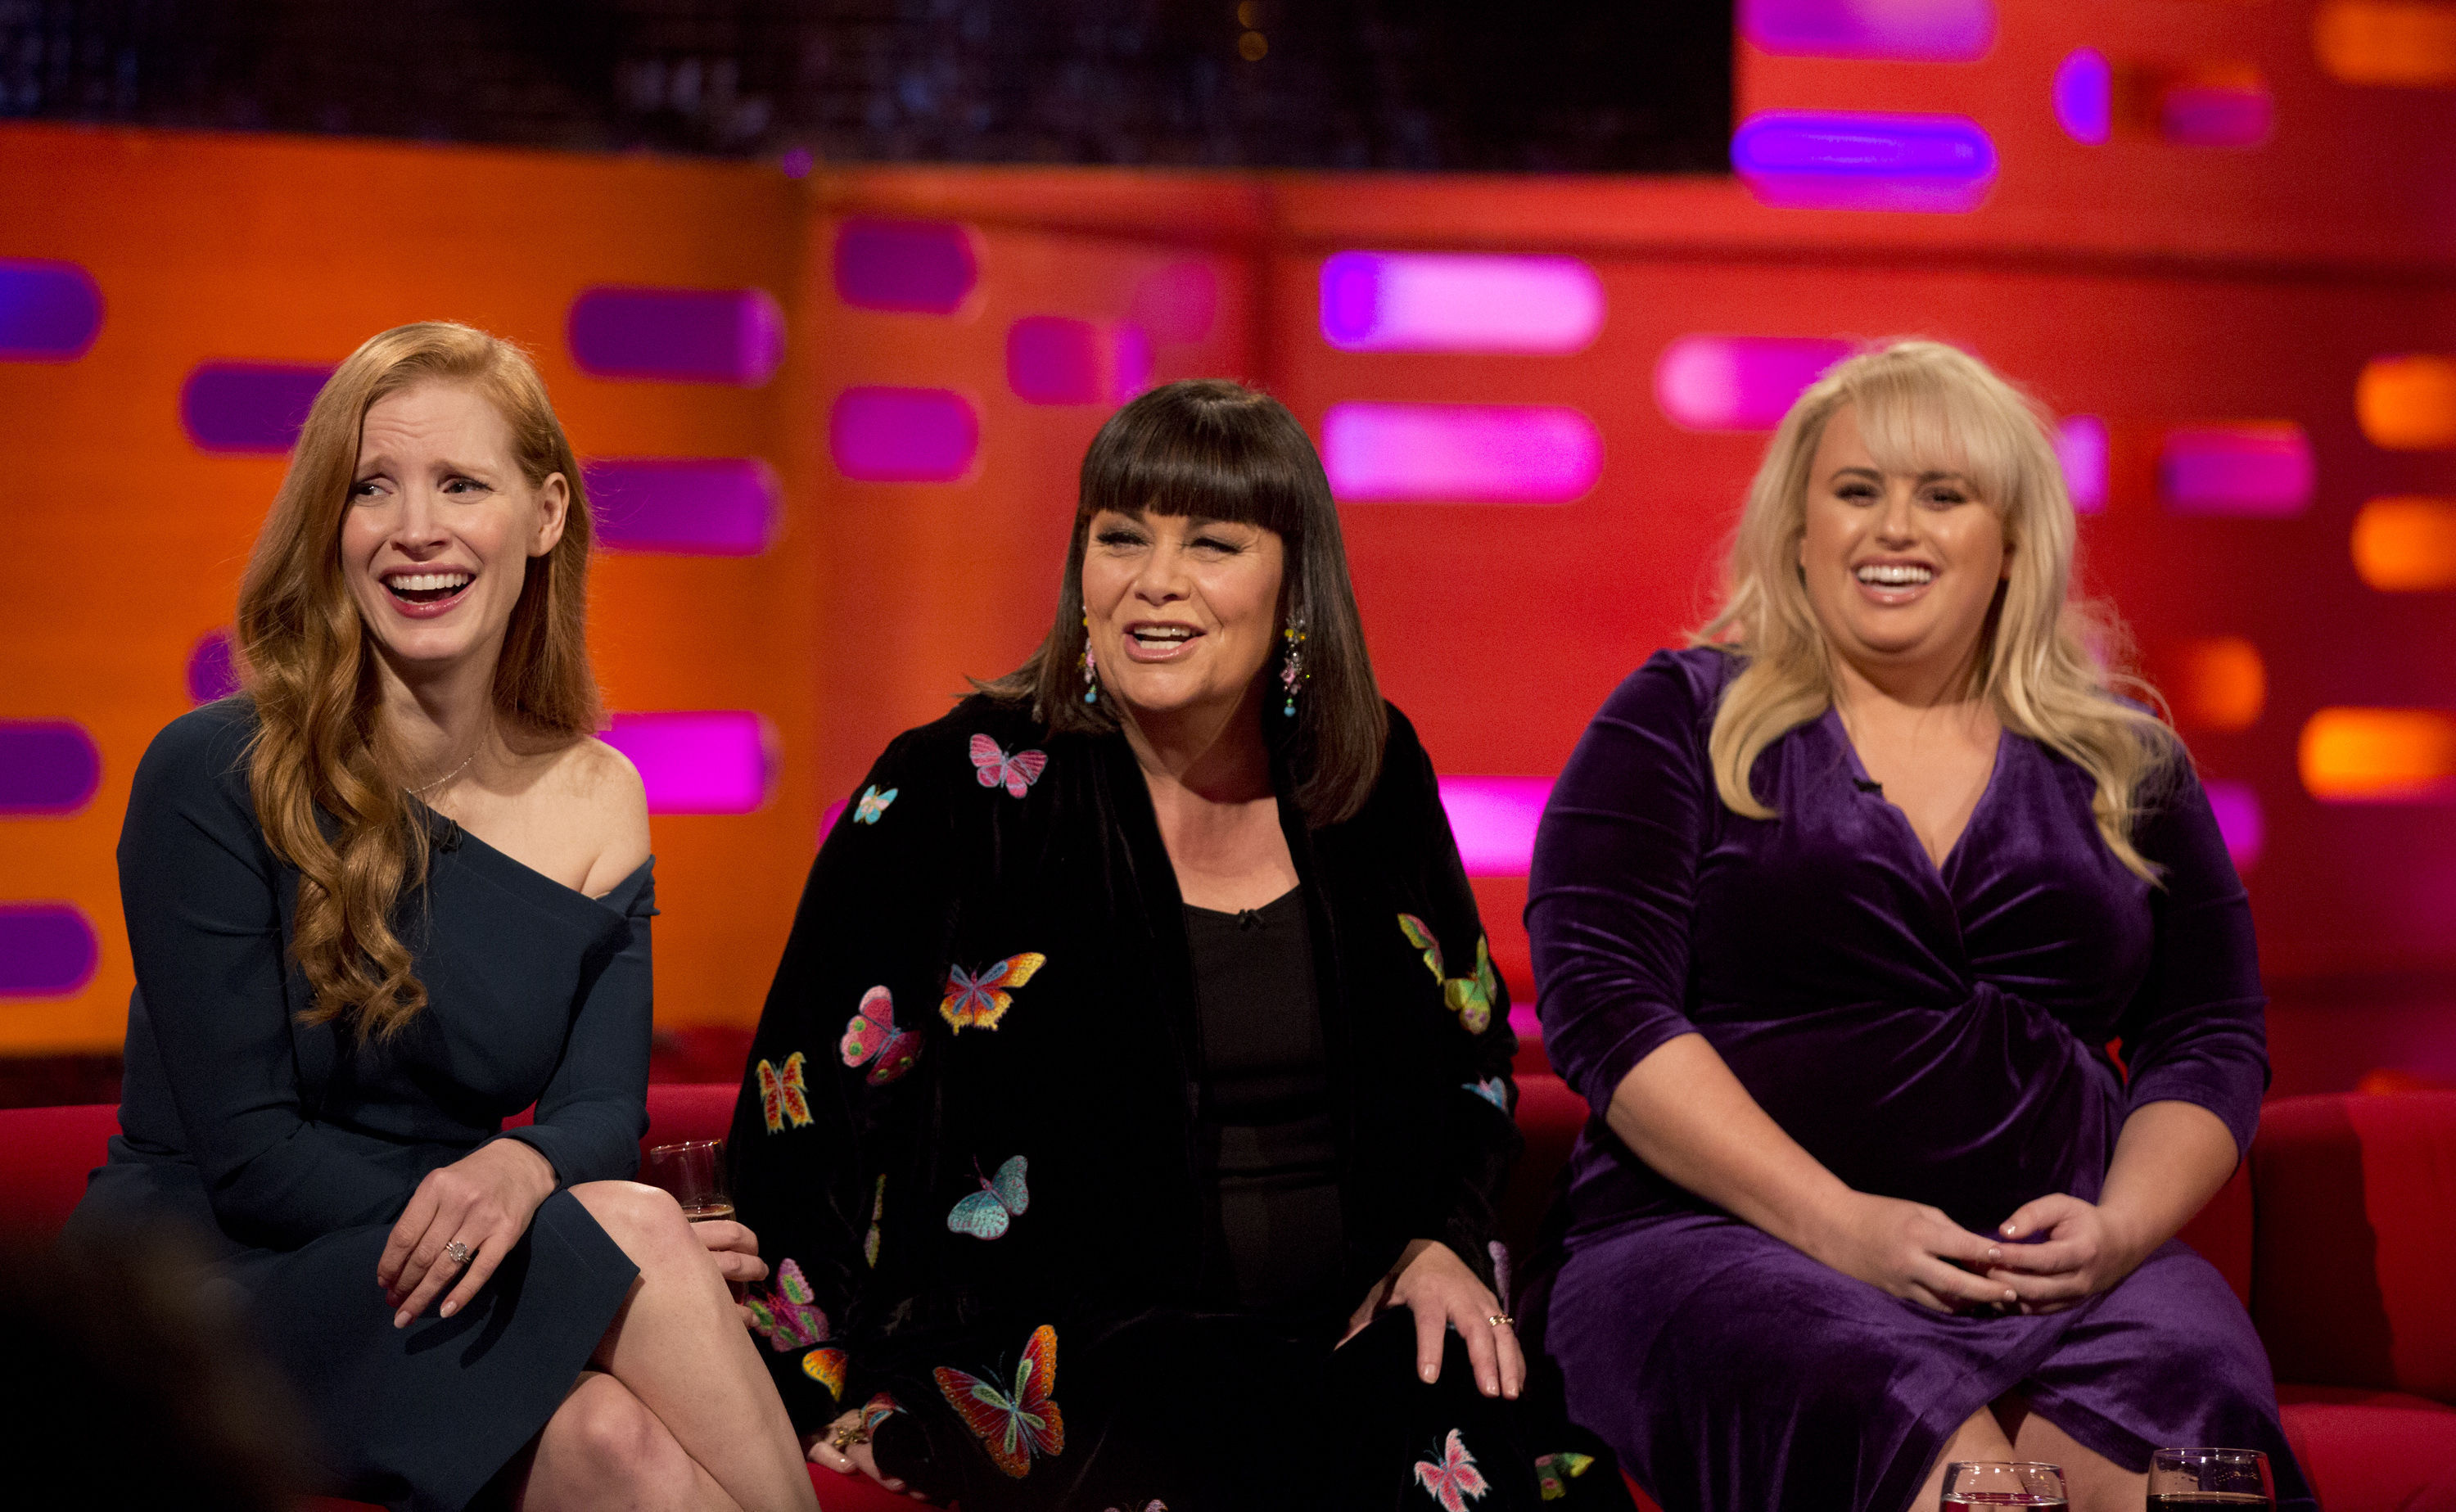 Jessica Chastain, Dawn French and Rebel Wilson during filming of the Graham Norton Show (Isabel Infantes/PA)